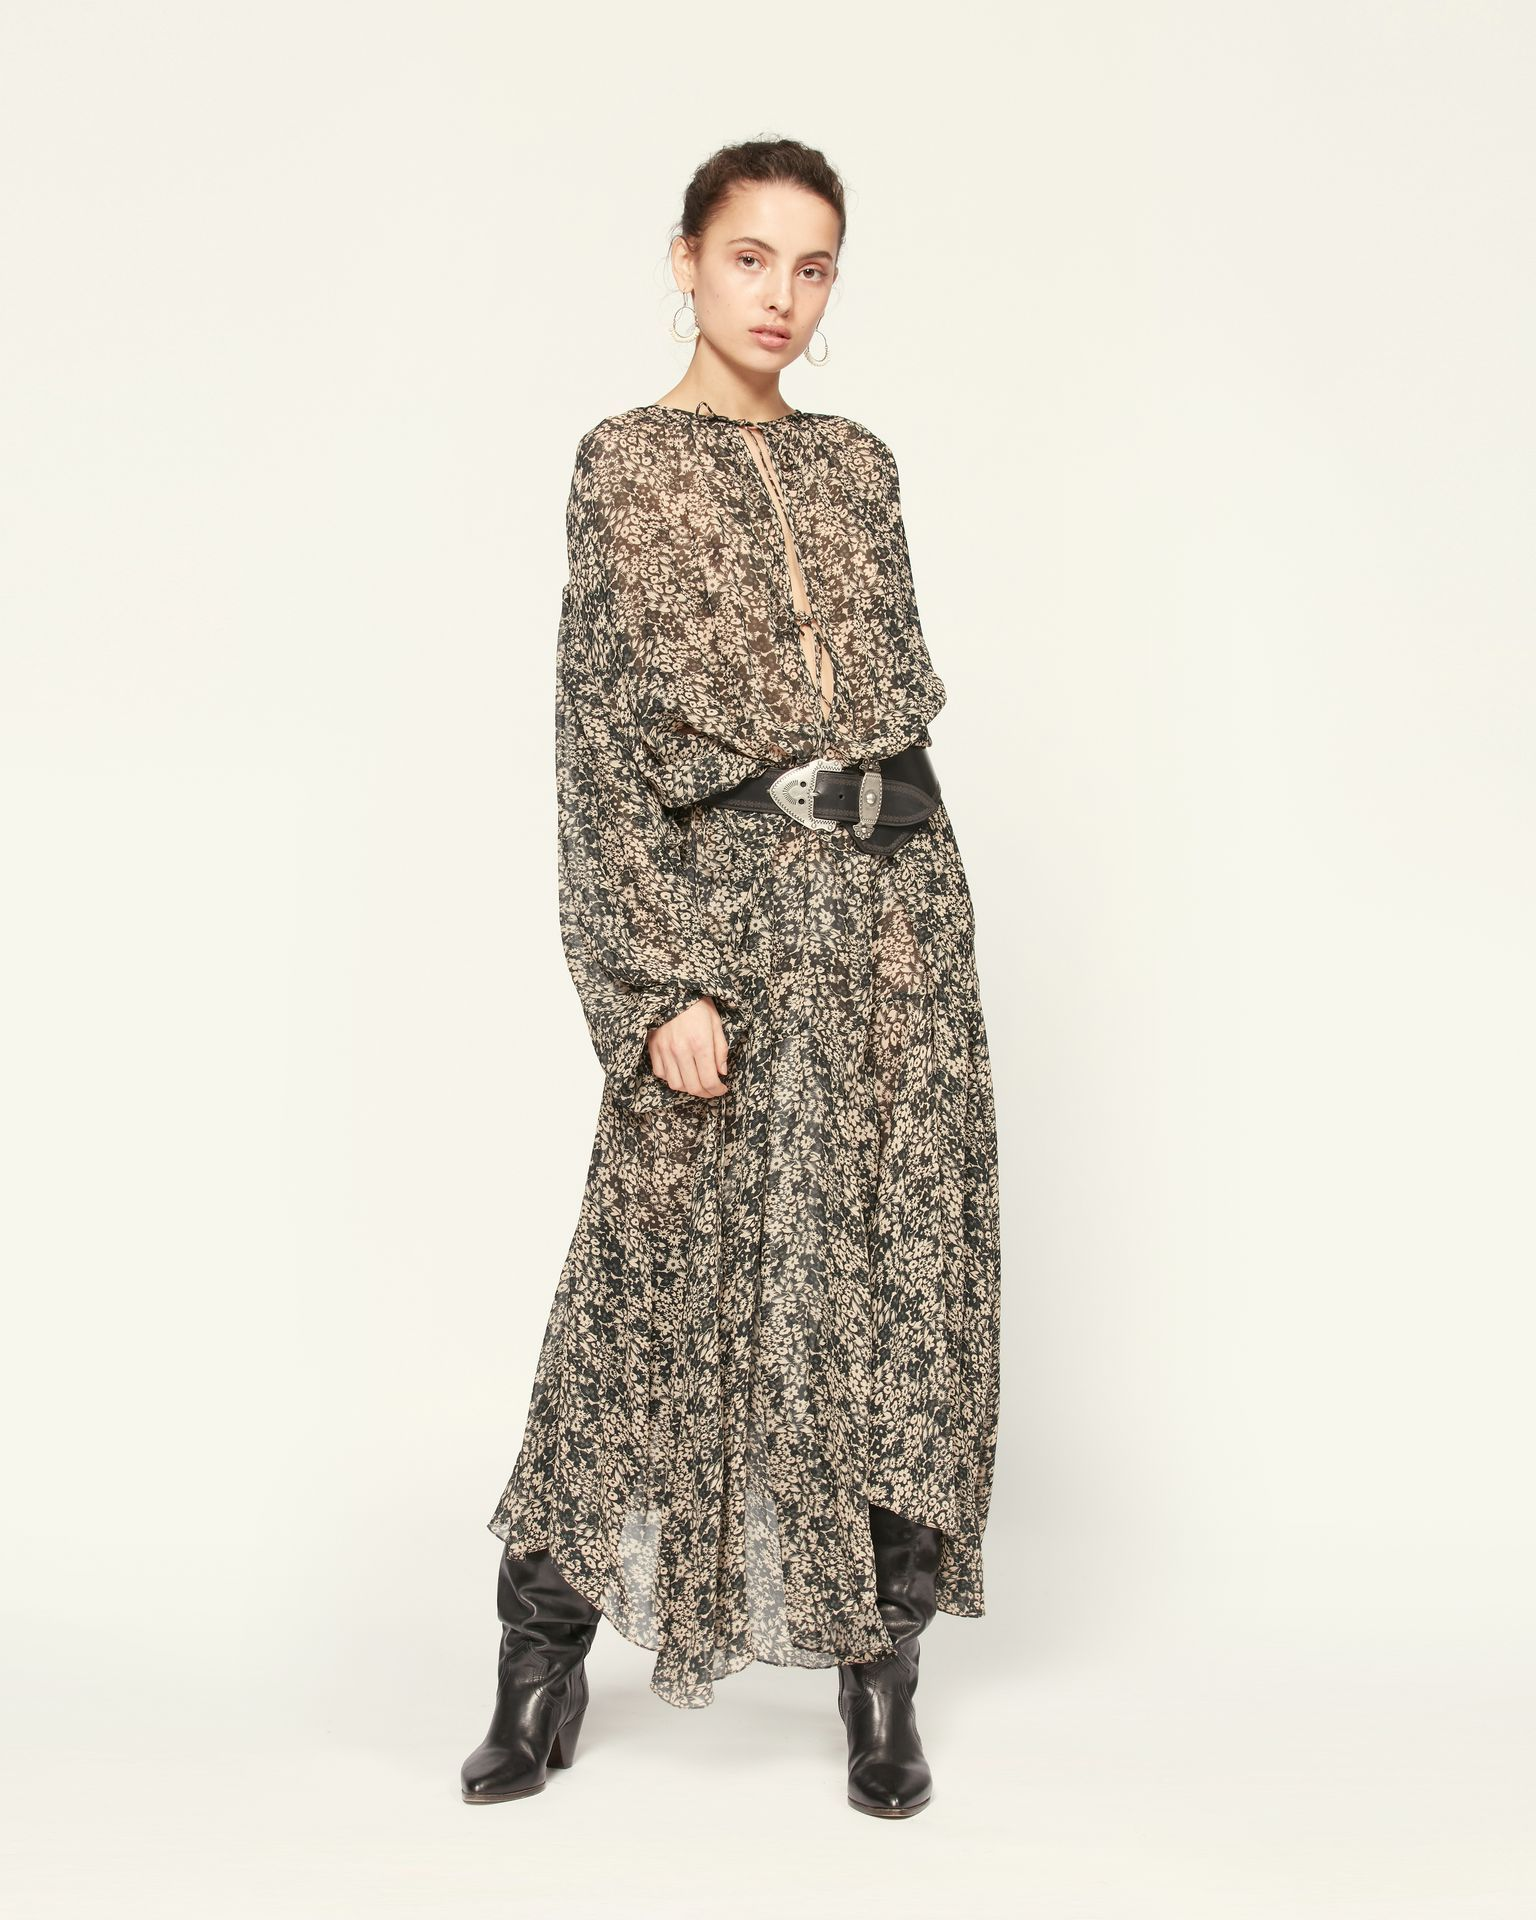 Isabel Marant Womens Dress Isabel Marant Etoile | Laureli Dress - Chalk